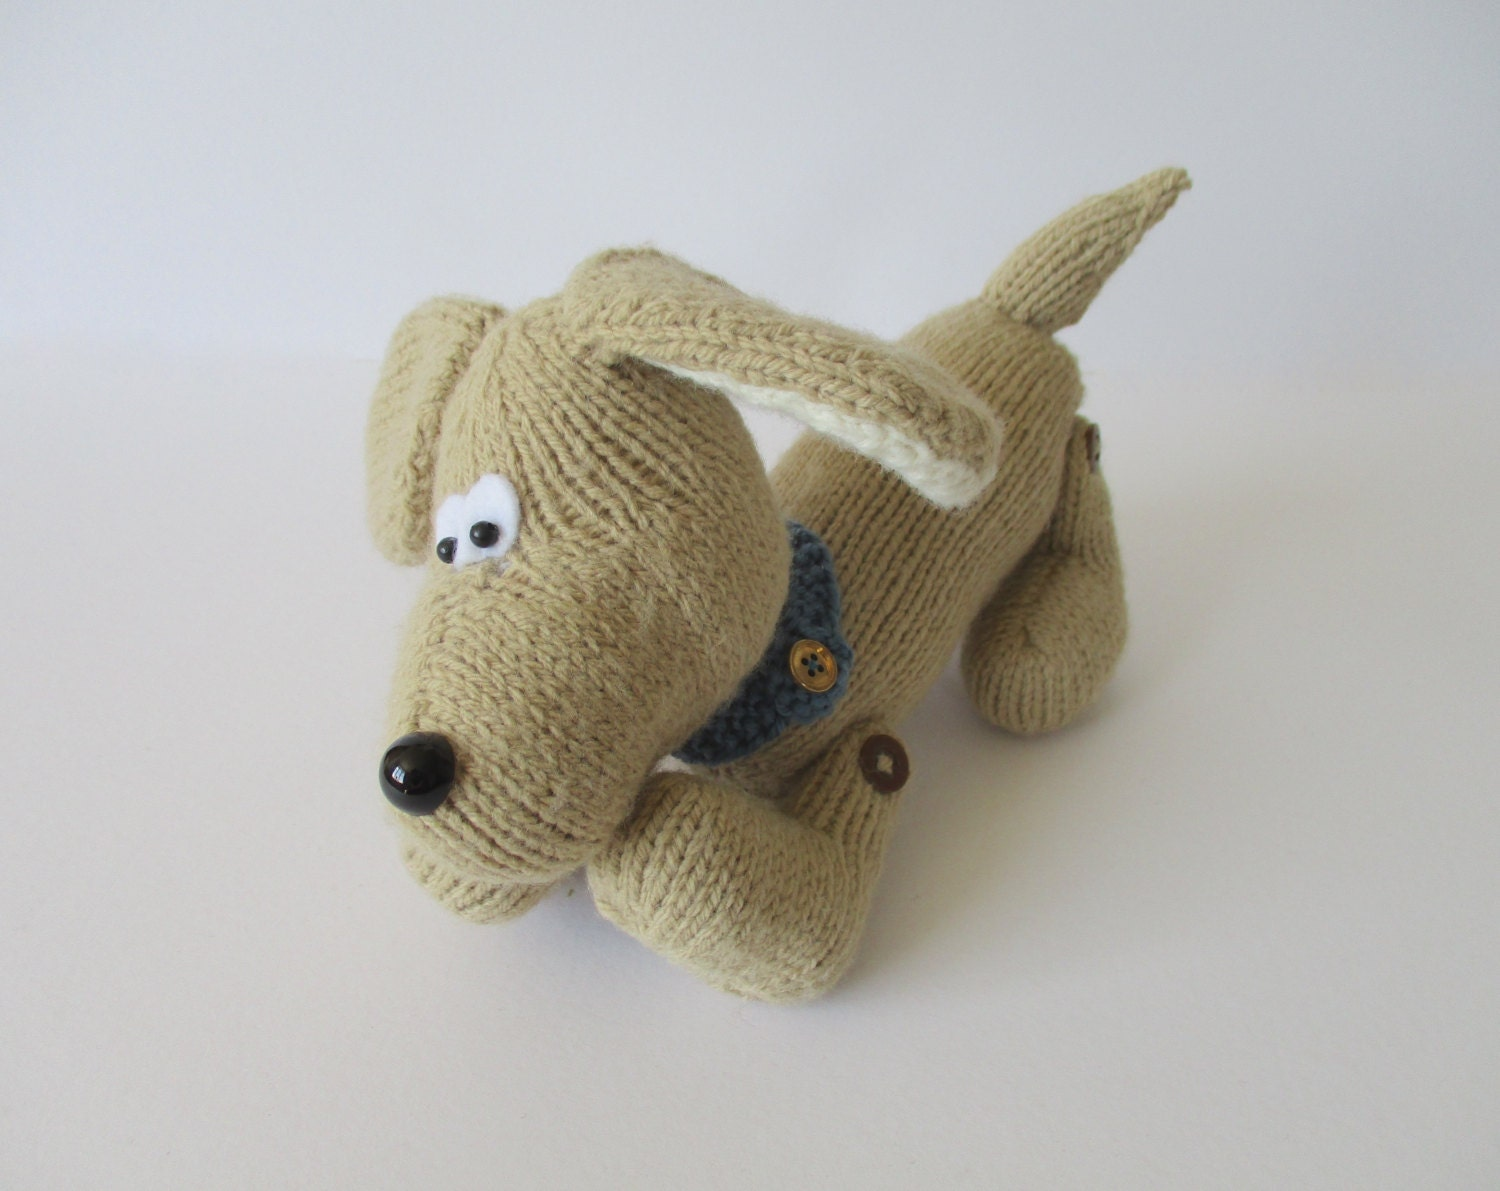 Knitting Patterns For Dogs Toys : Biscuit the Dog toy knitting pattern by fluffandfuzz on Etsy